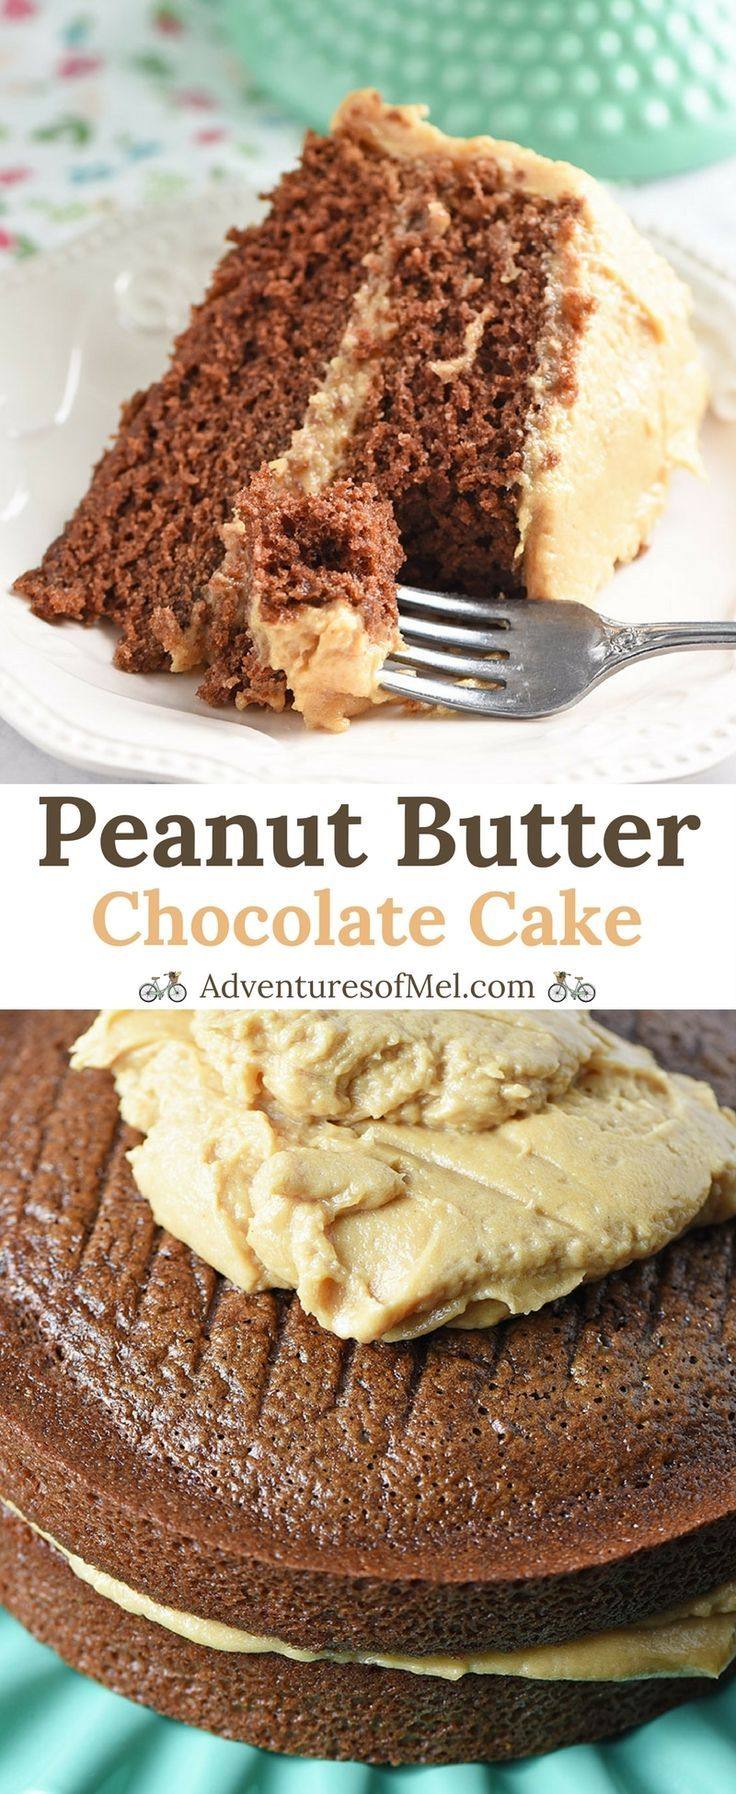 Peanut Butter Chocolate Cake from scratch, layering homemade chocolate cake with a decadent peanut butter cream cheese frosting. Dessert recipe made for chocolate lovers. #chocolate #chocolatecake #peanutbutter #frosting #icing #fromscratch #cake #dessert #chocolatelovers